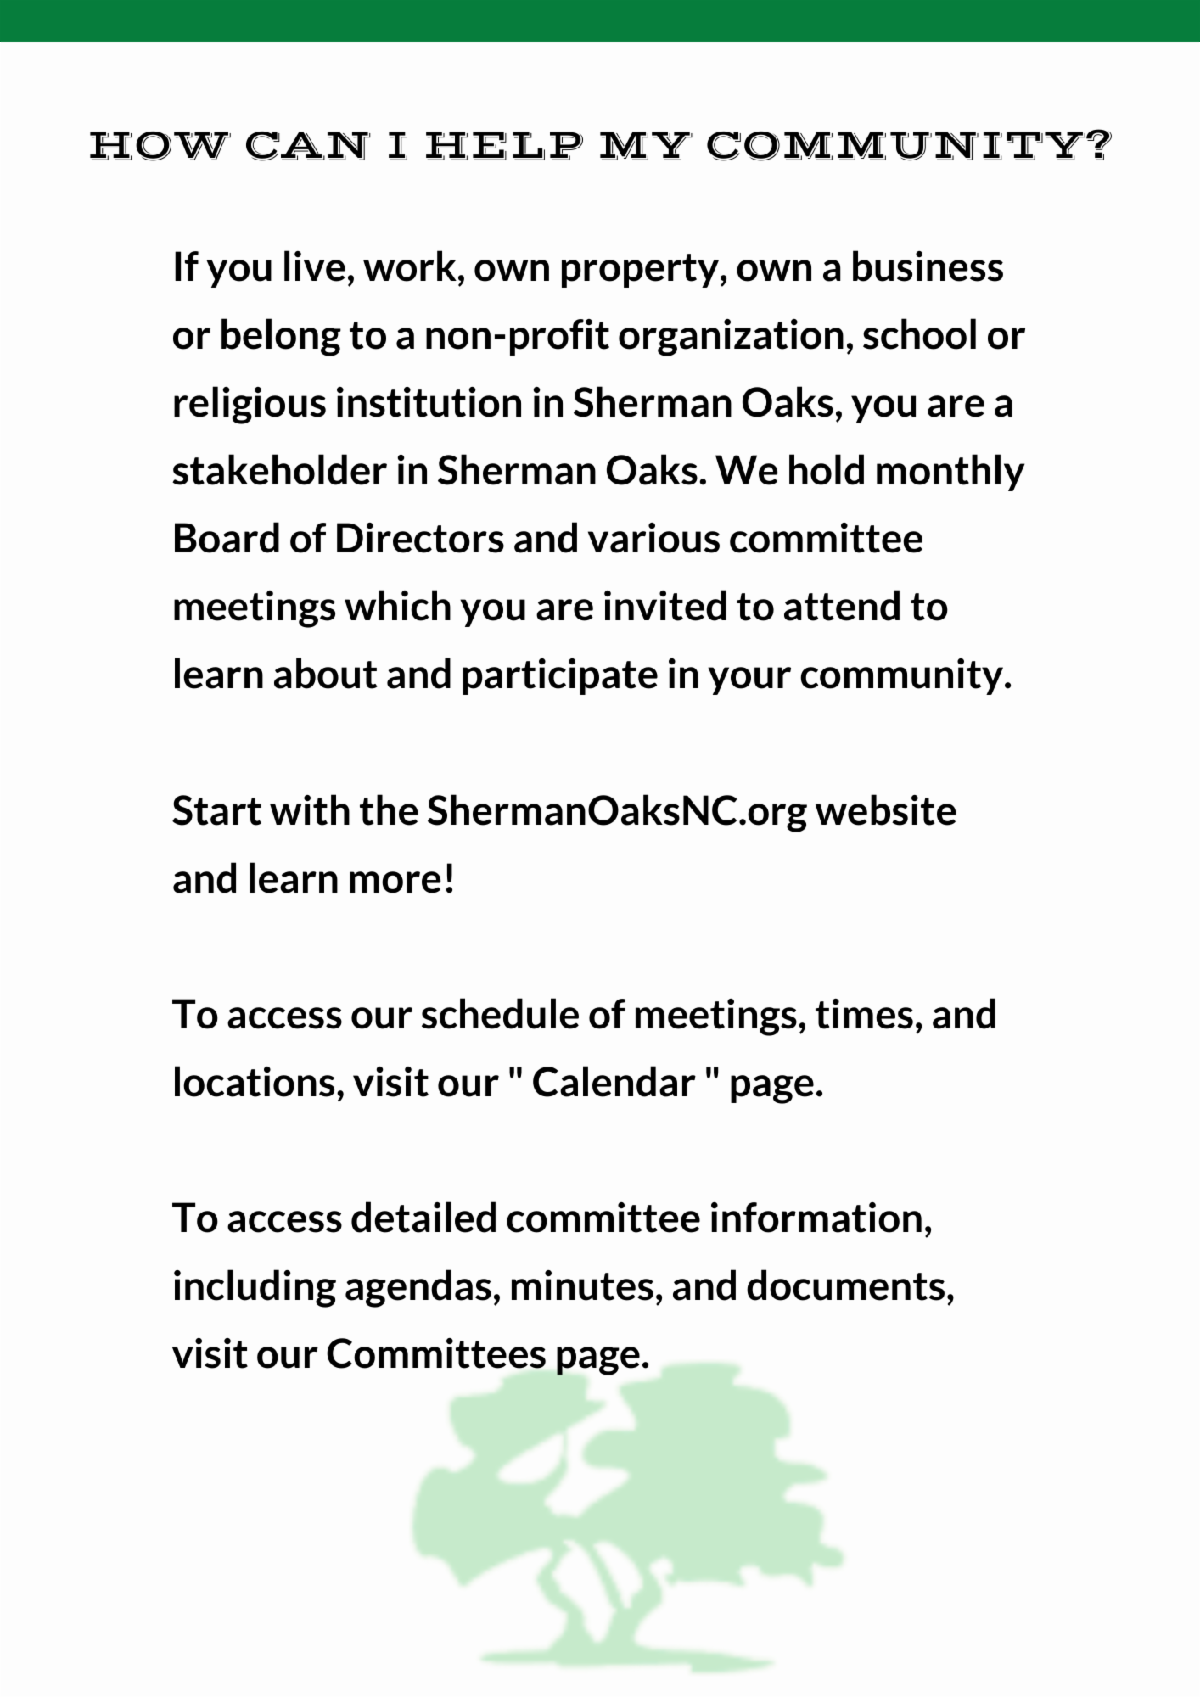 If you live work own property own a business or belong to a non profit organization school or religious institution in Sherman Oaks you are a stakeholder in Sherman Oaks. We hold monthly Board of Directors and various committee meetings which you are